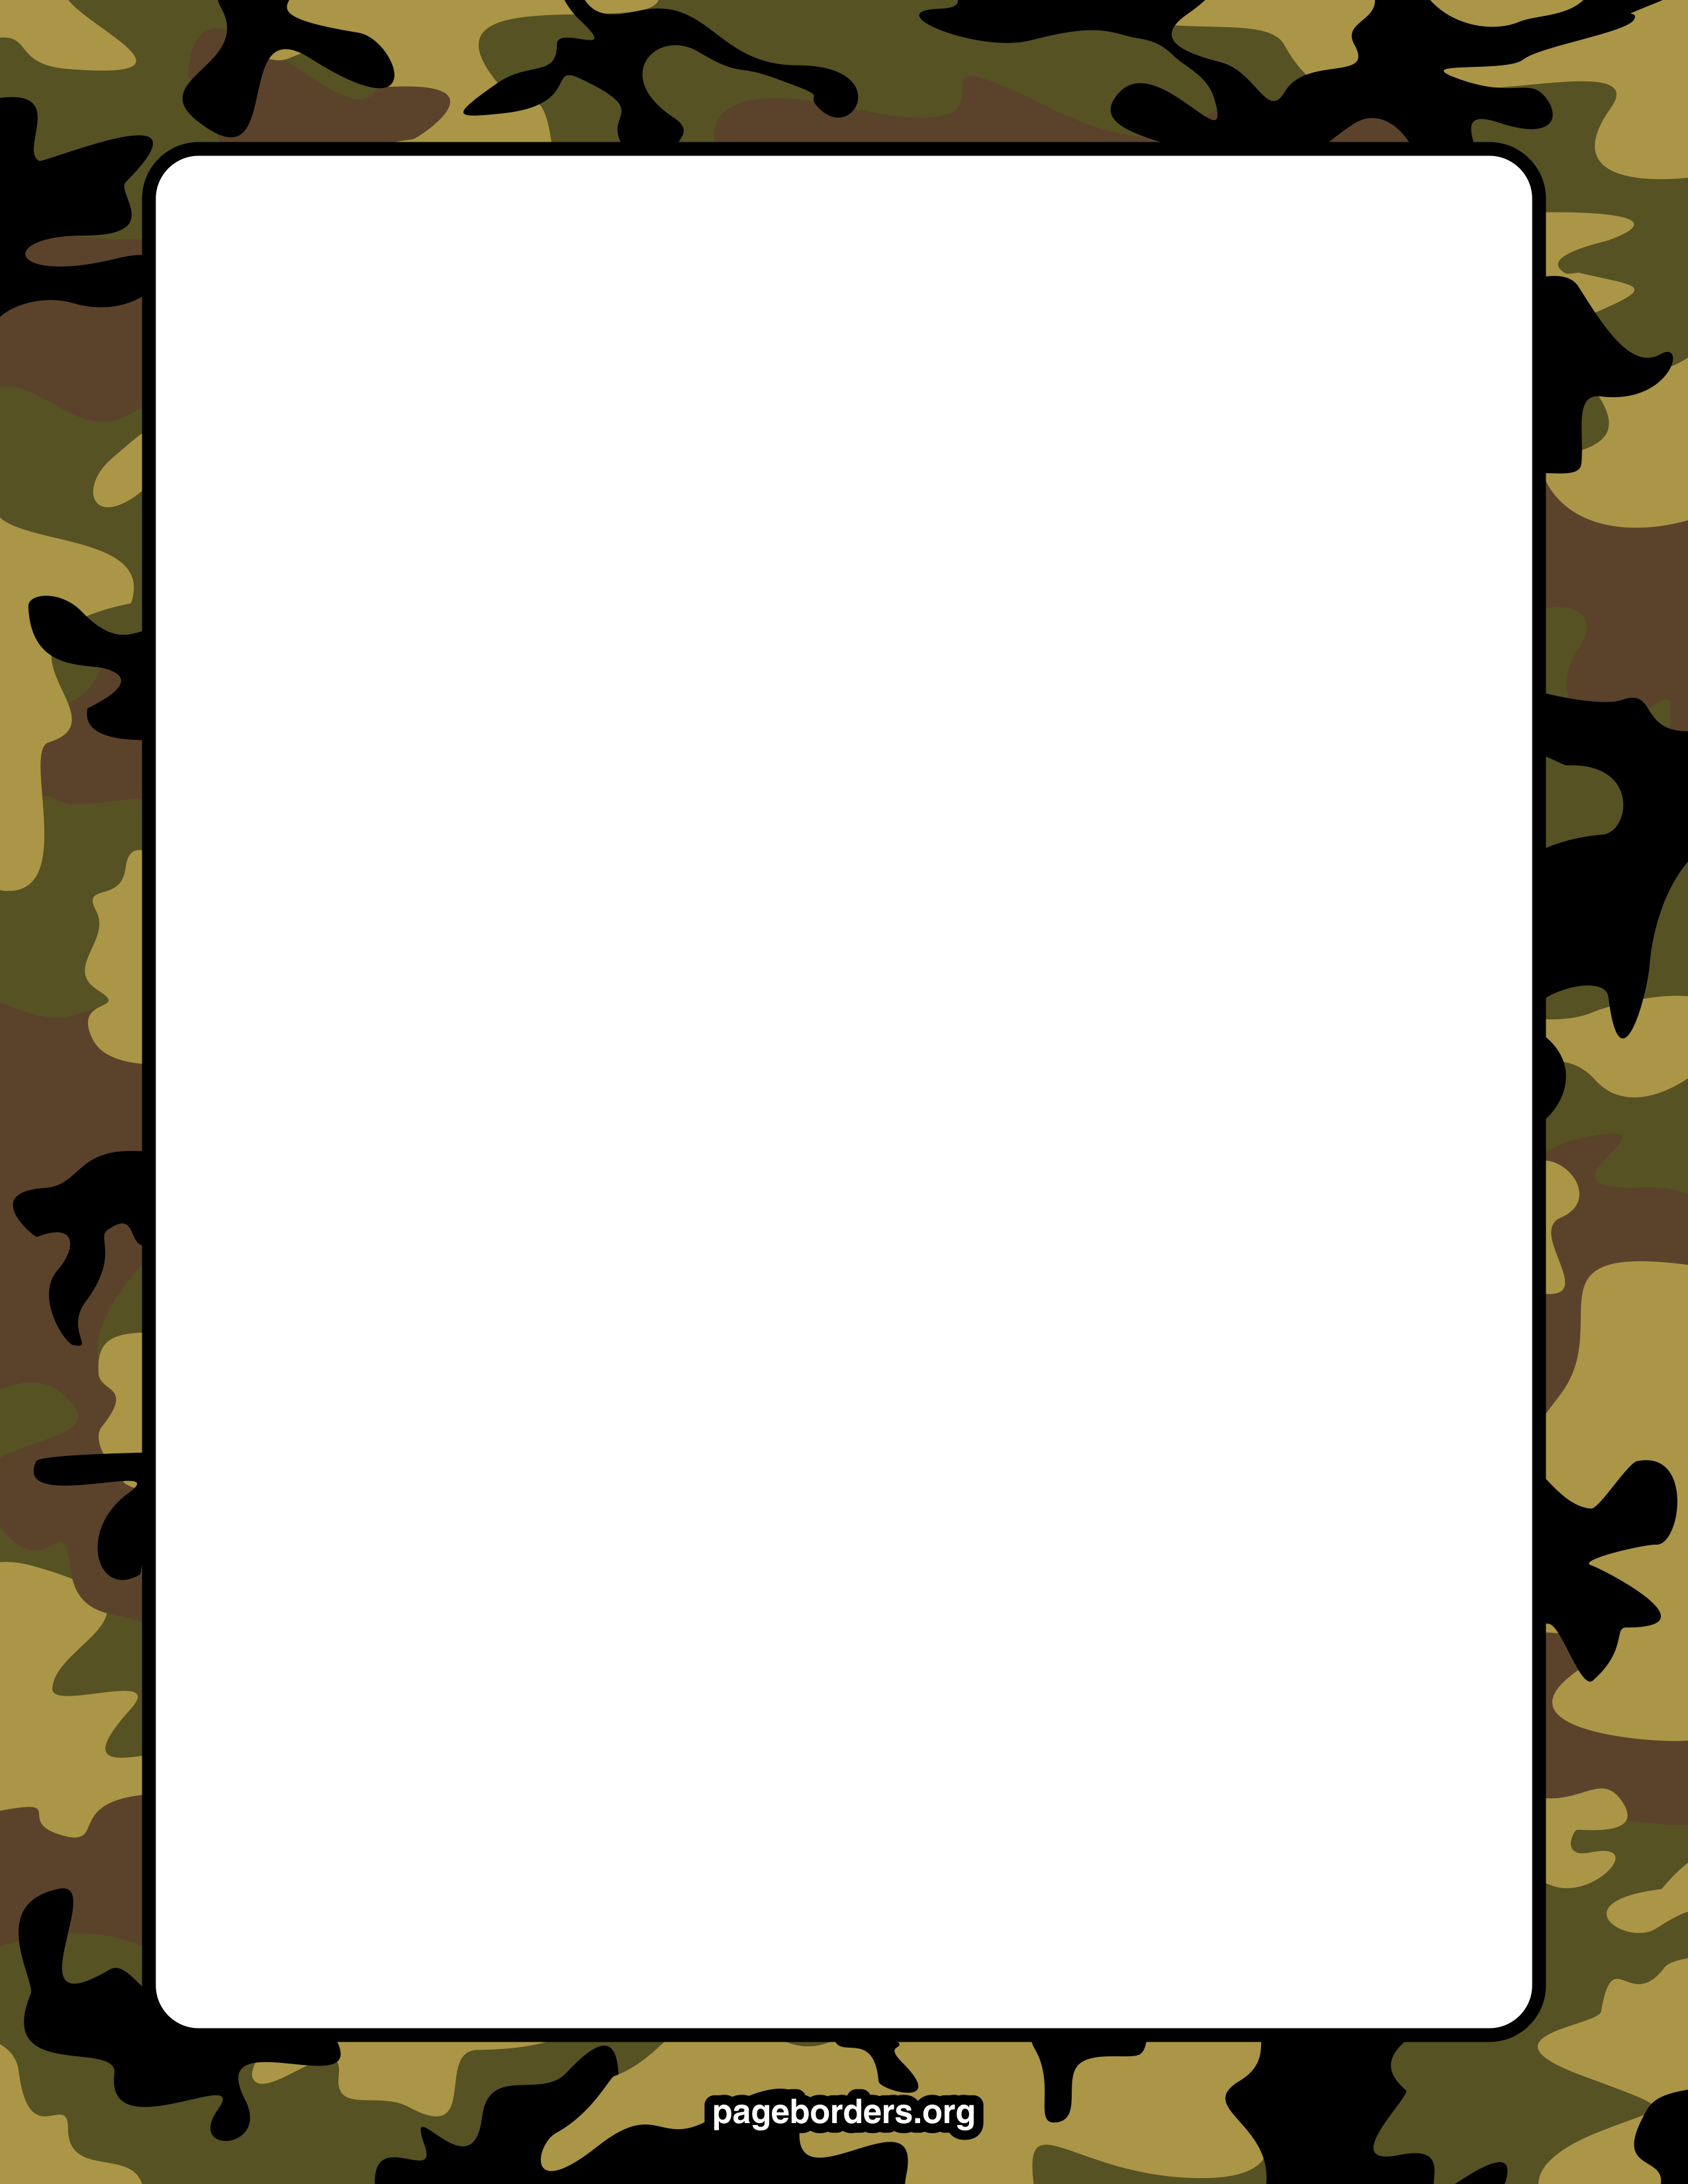 Camouflage Border For Word - ClipArt Best